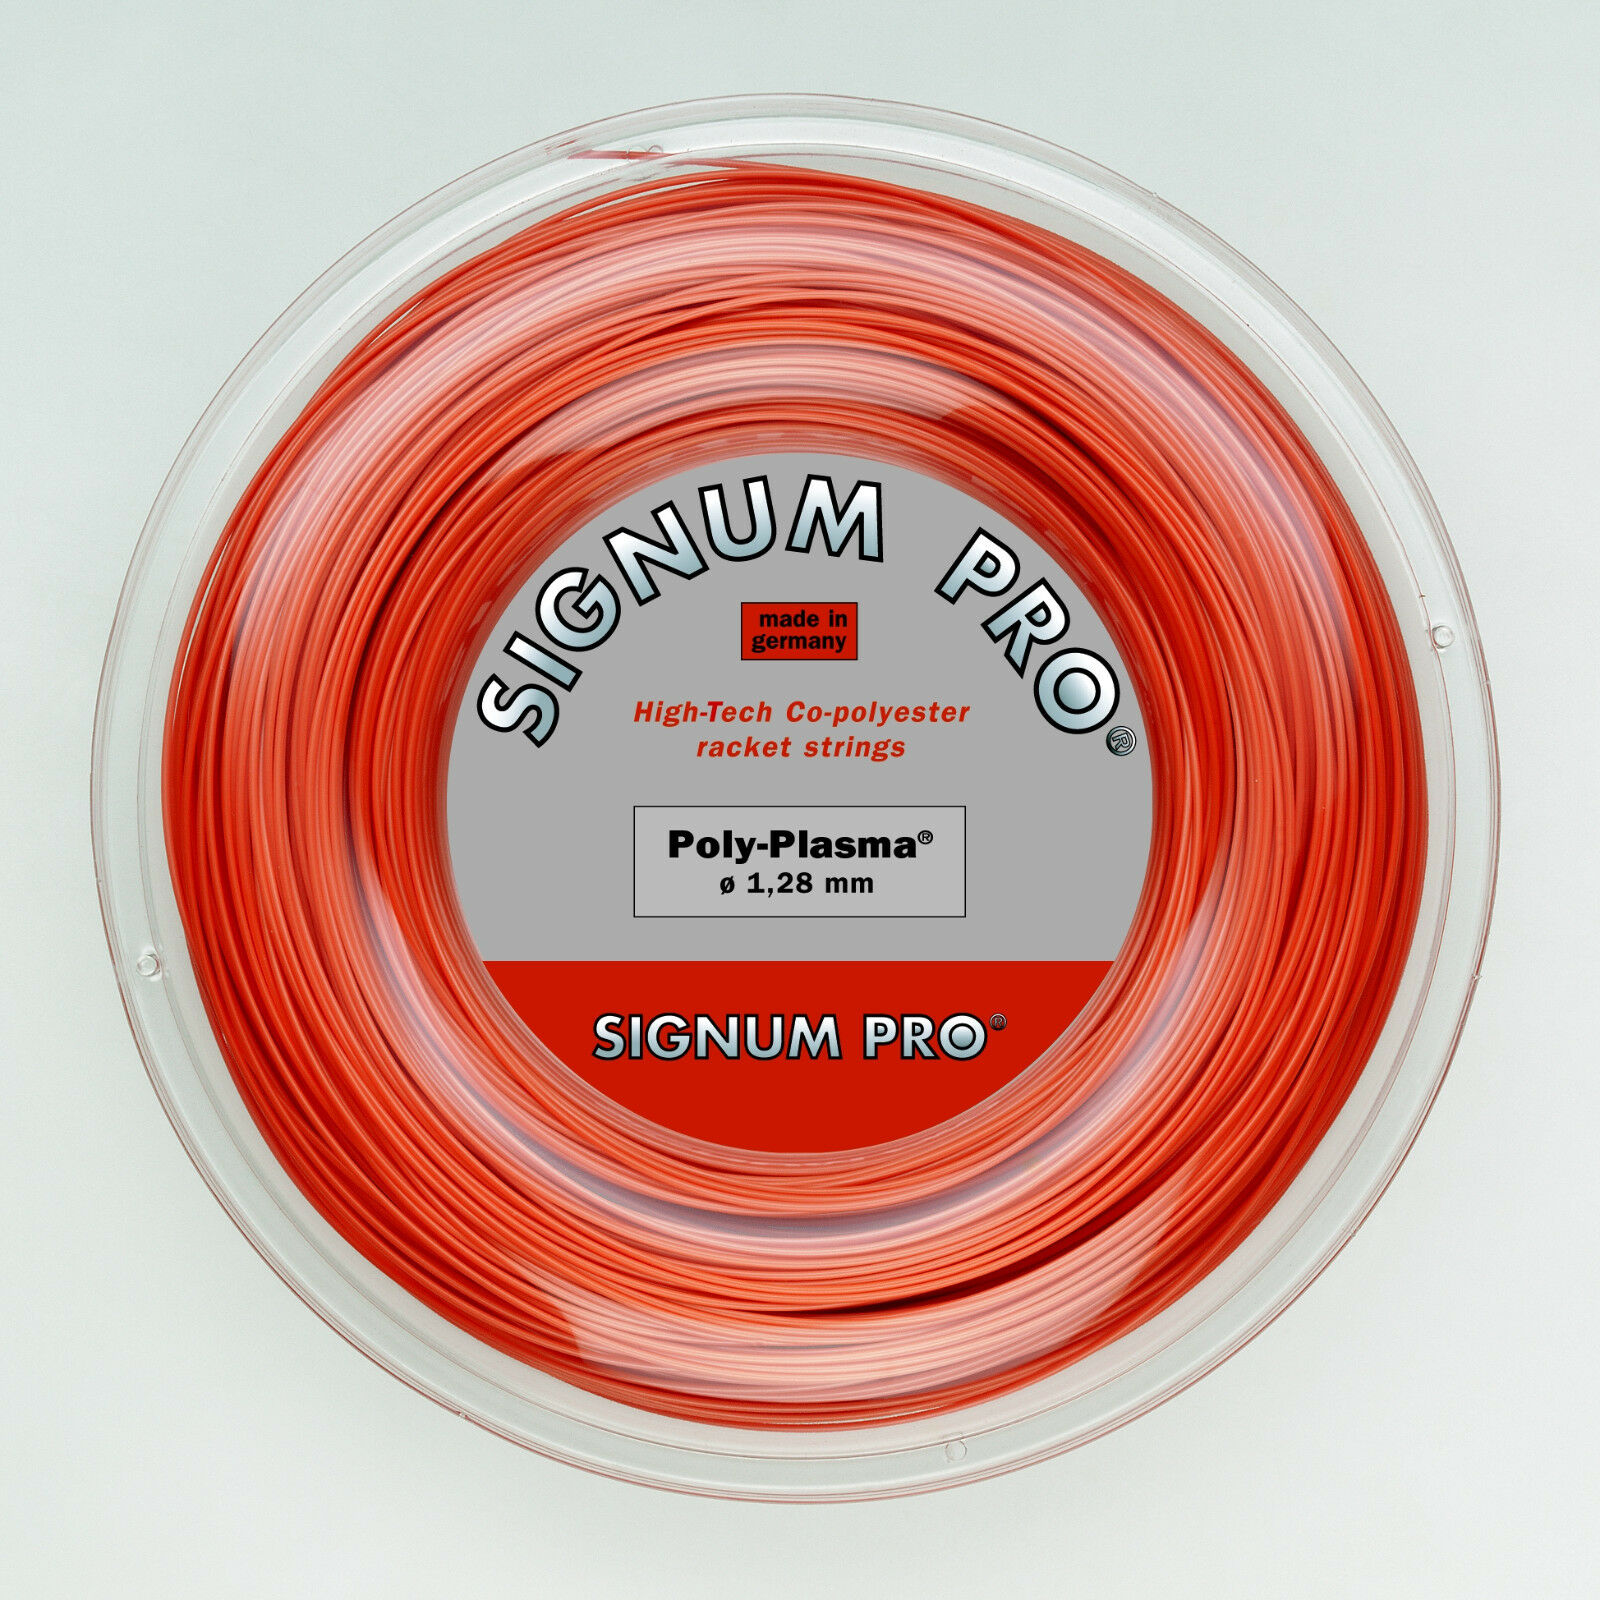 Signum Pro Poly Plasma 200m   Orange     1 23 - 1 28 - 1 33mm 87e1cd